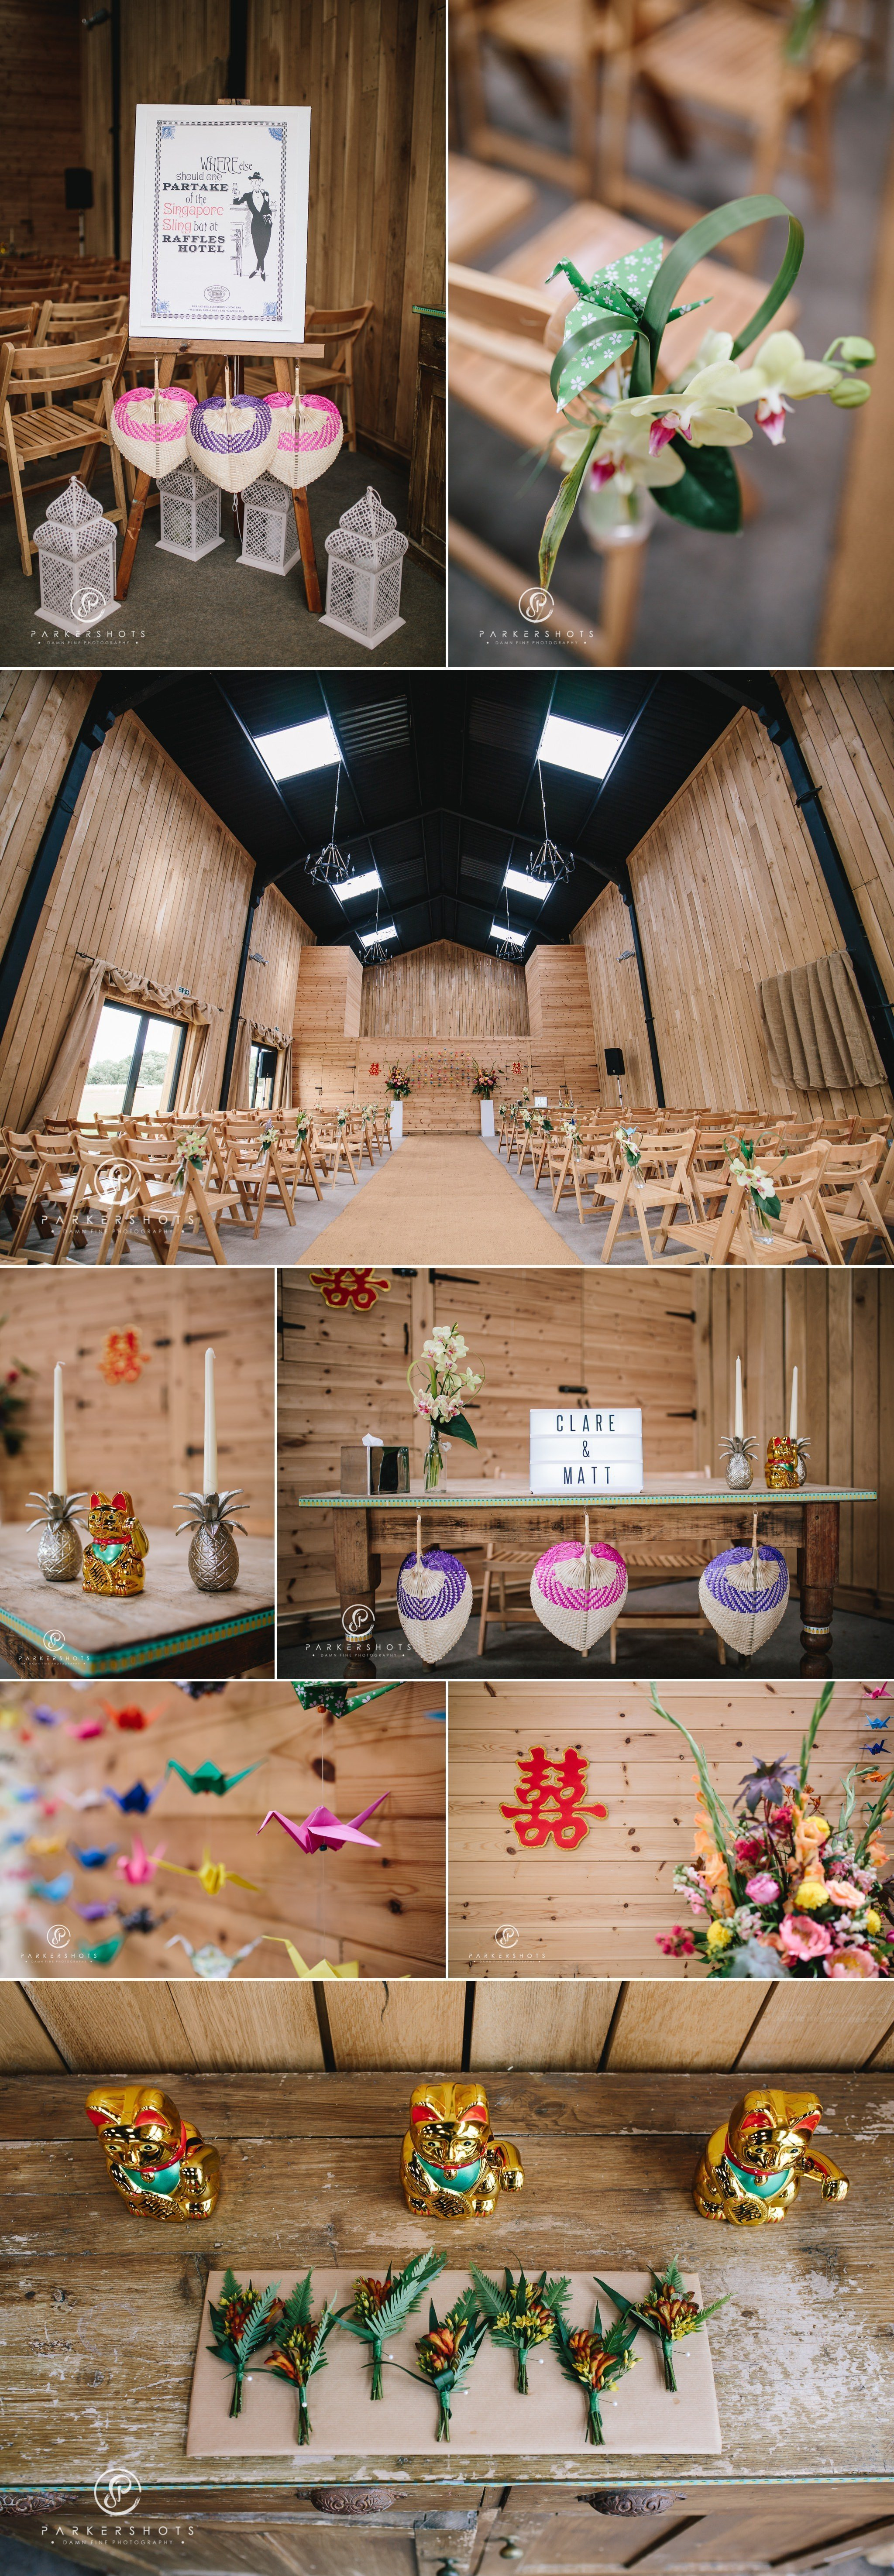 The ceremony barn at Chafford Park ready for a wedding